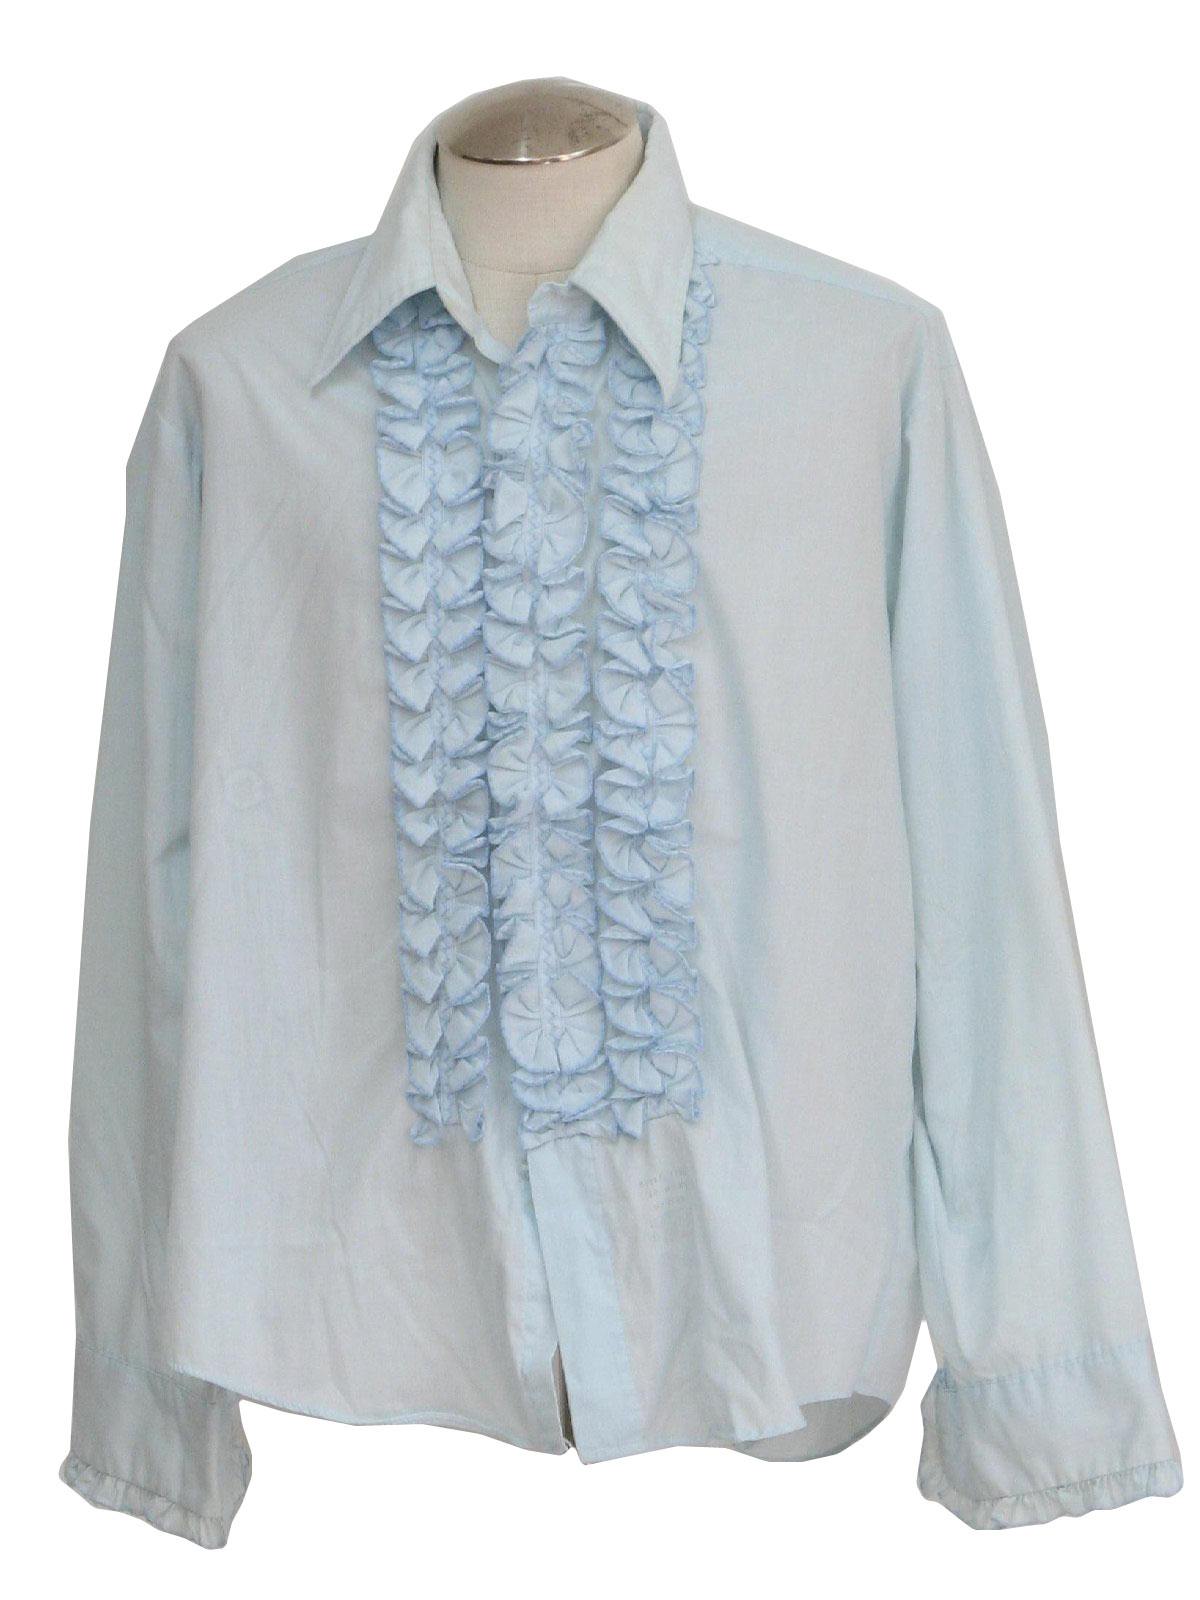 Vintage lion of troy 70 39 s shirt 70s lion of troy mens for Powder blue tuxedo shirt